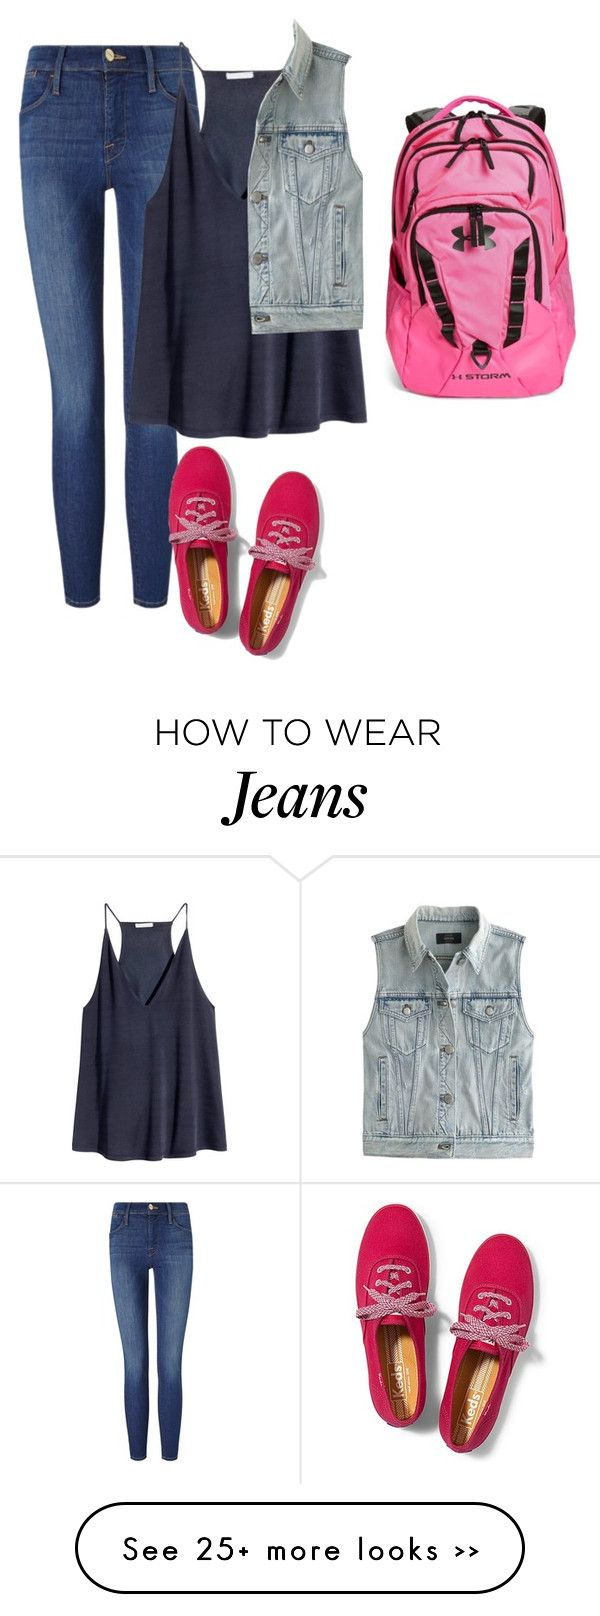 """""""OOTD"""" by emilystoneman on Polyvore featuring Frame Denim, H&M, J.Crew, Keds and Under Armour"""